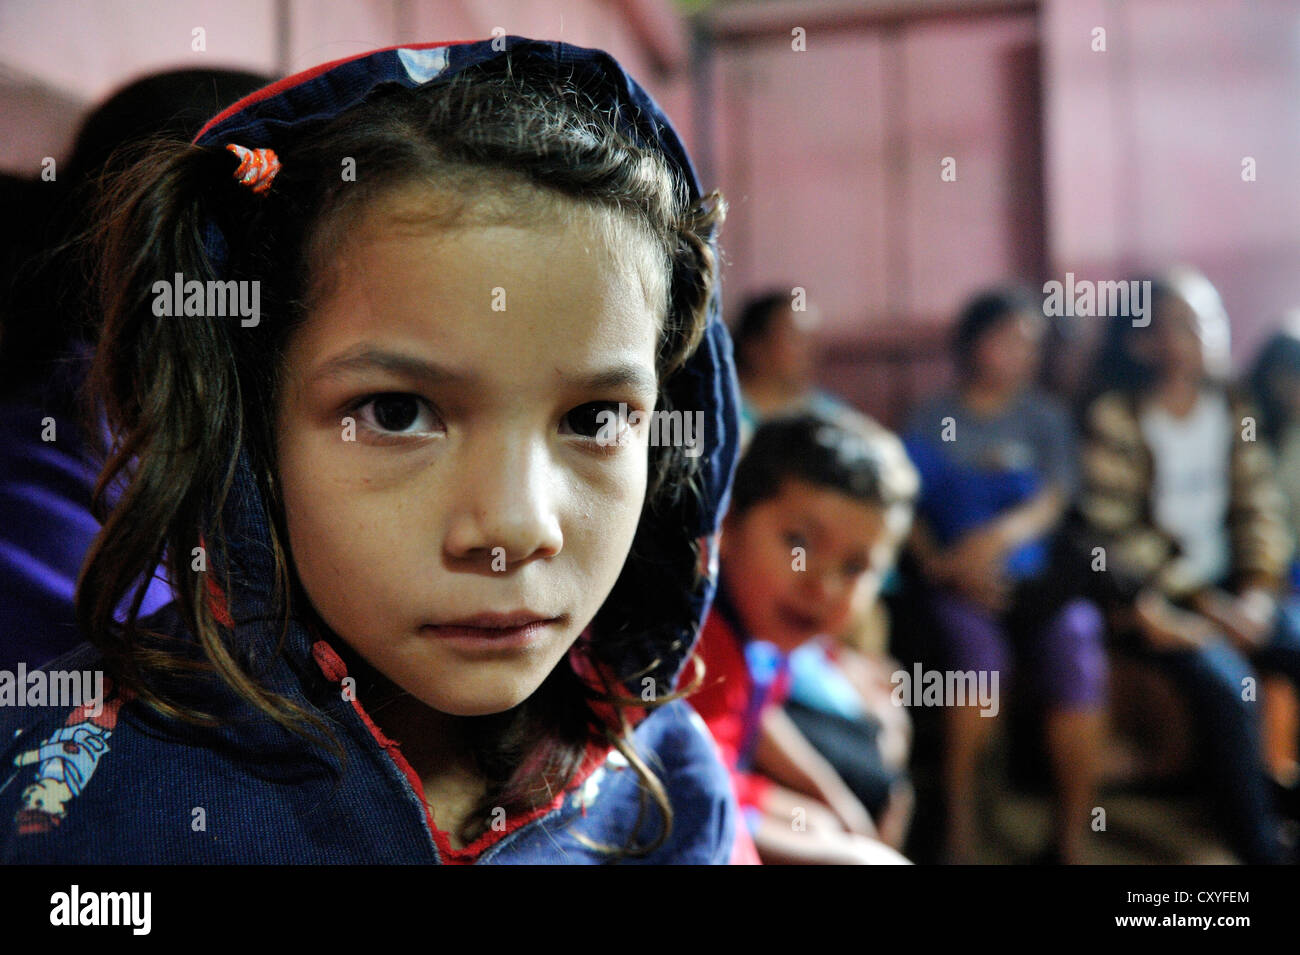 Girl during a meeting of an aid organisation that provides health services and information for mothers and children, Stock Photo